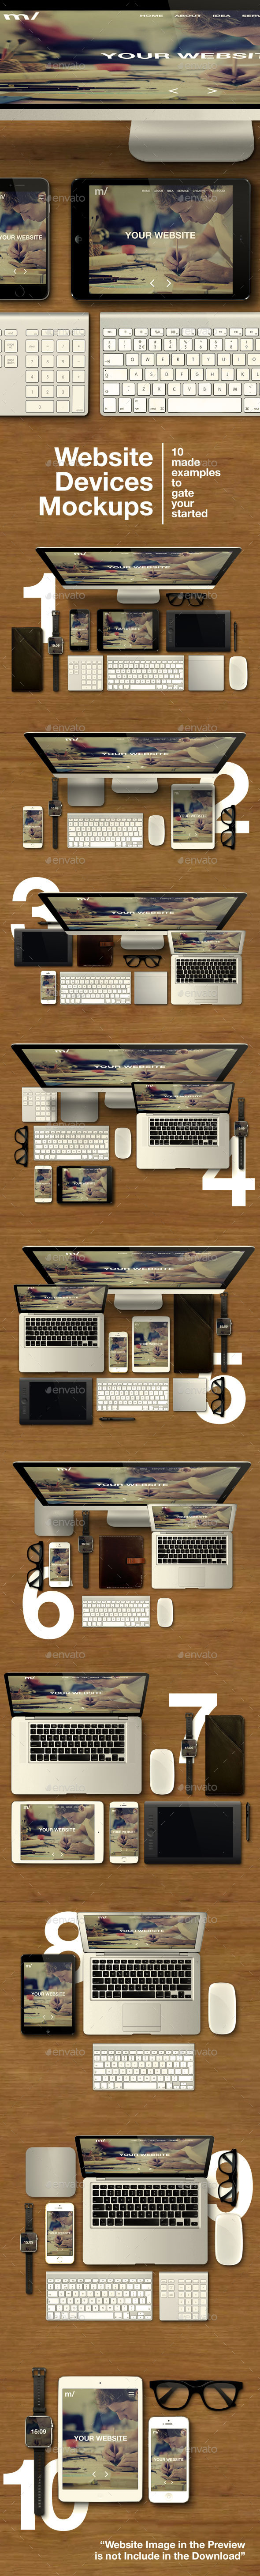 GraphicRiver Website Devices Mockups 8933130